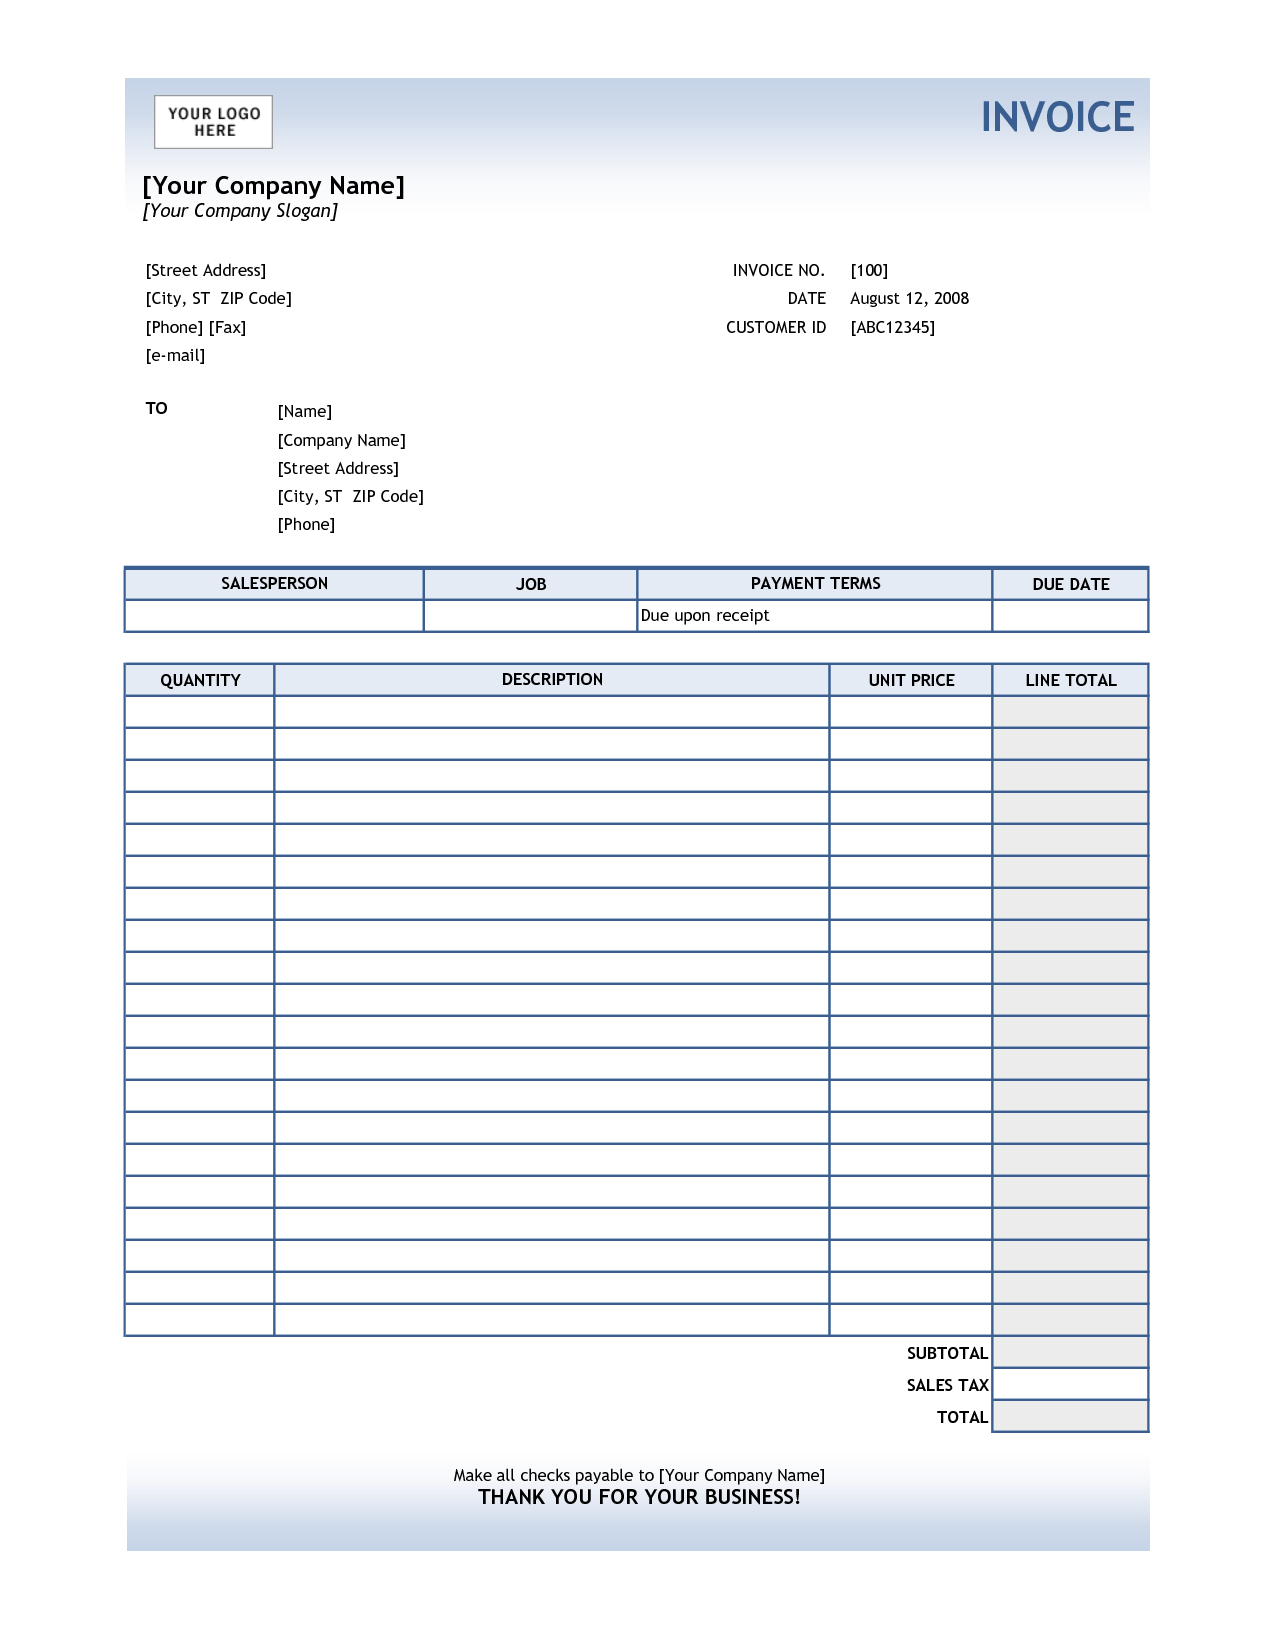 Lawn Mowing Invoice Template Free and Maintenance Invoice Template Robinhobbsfo